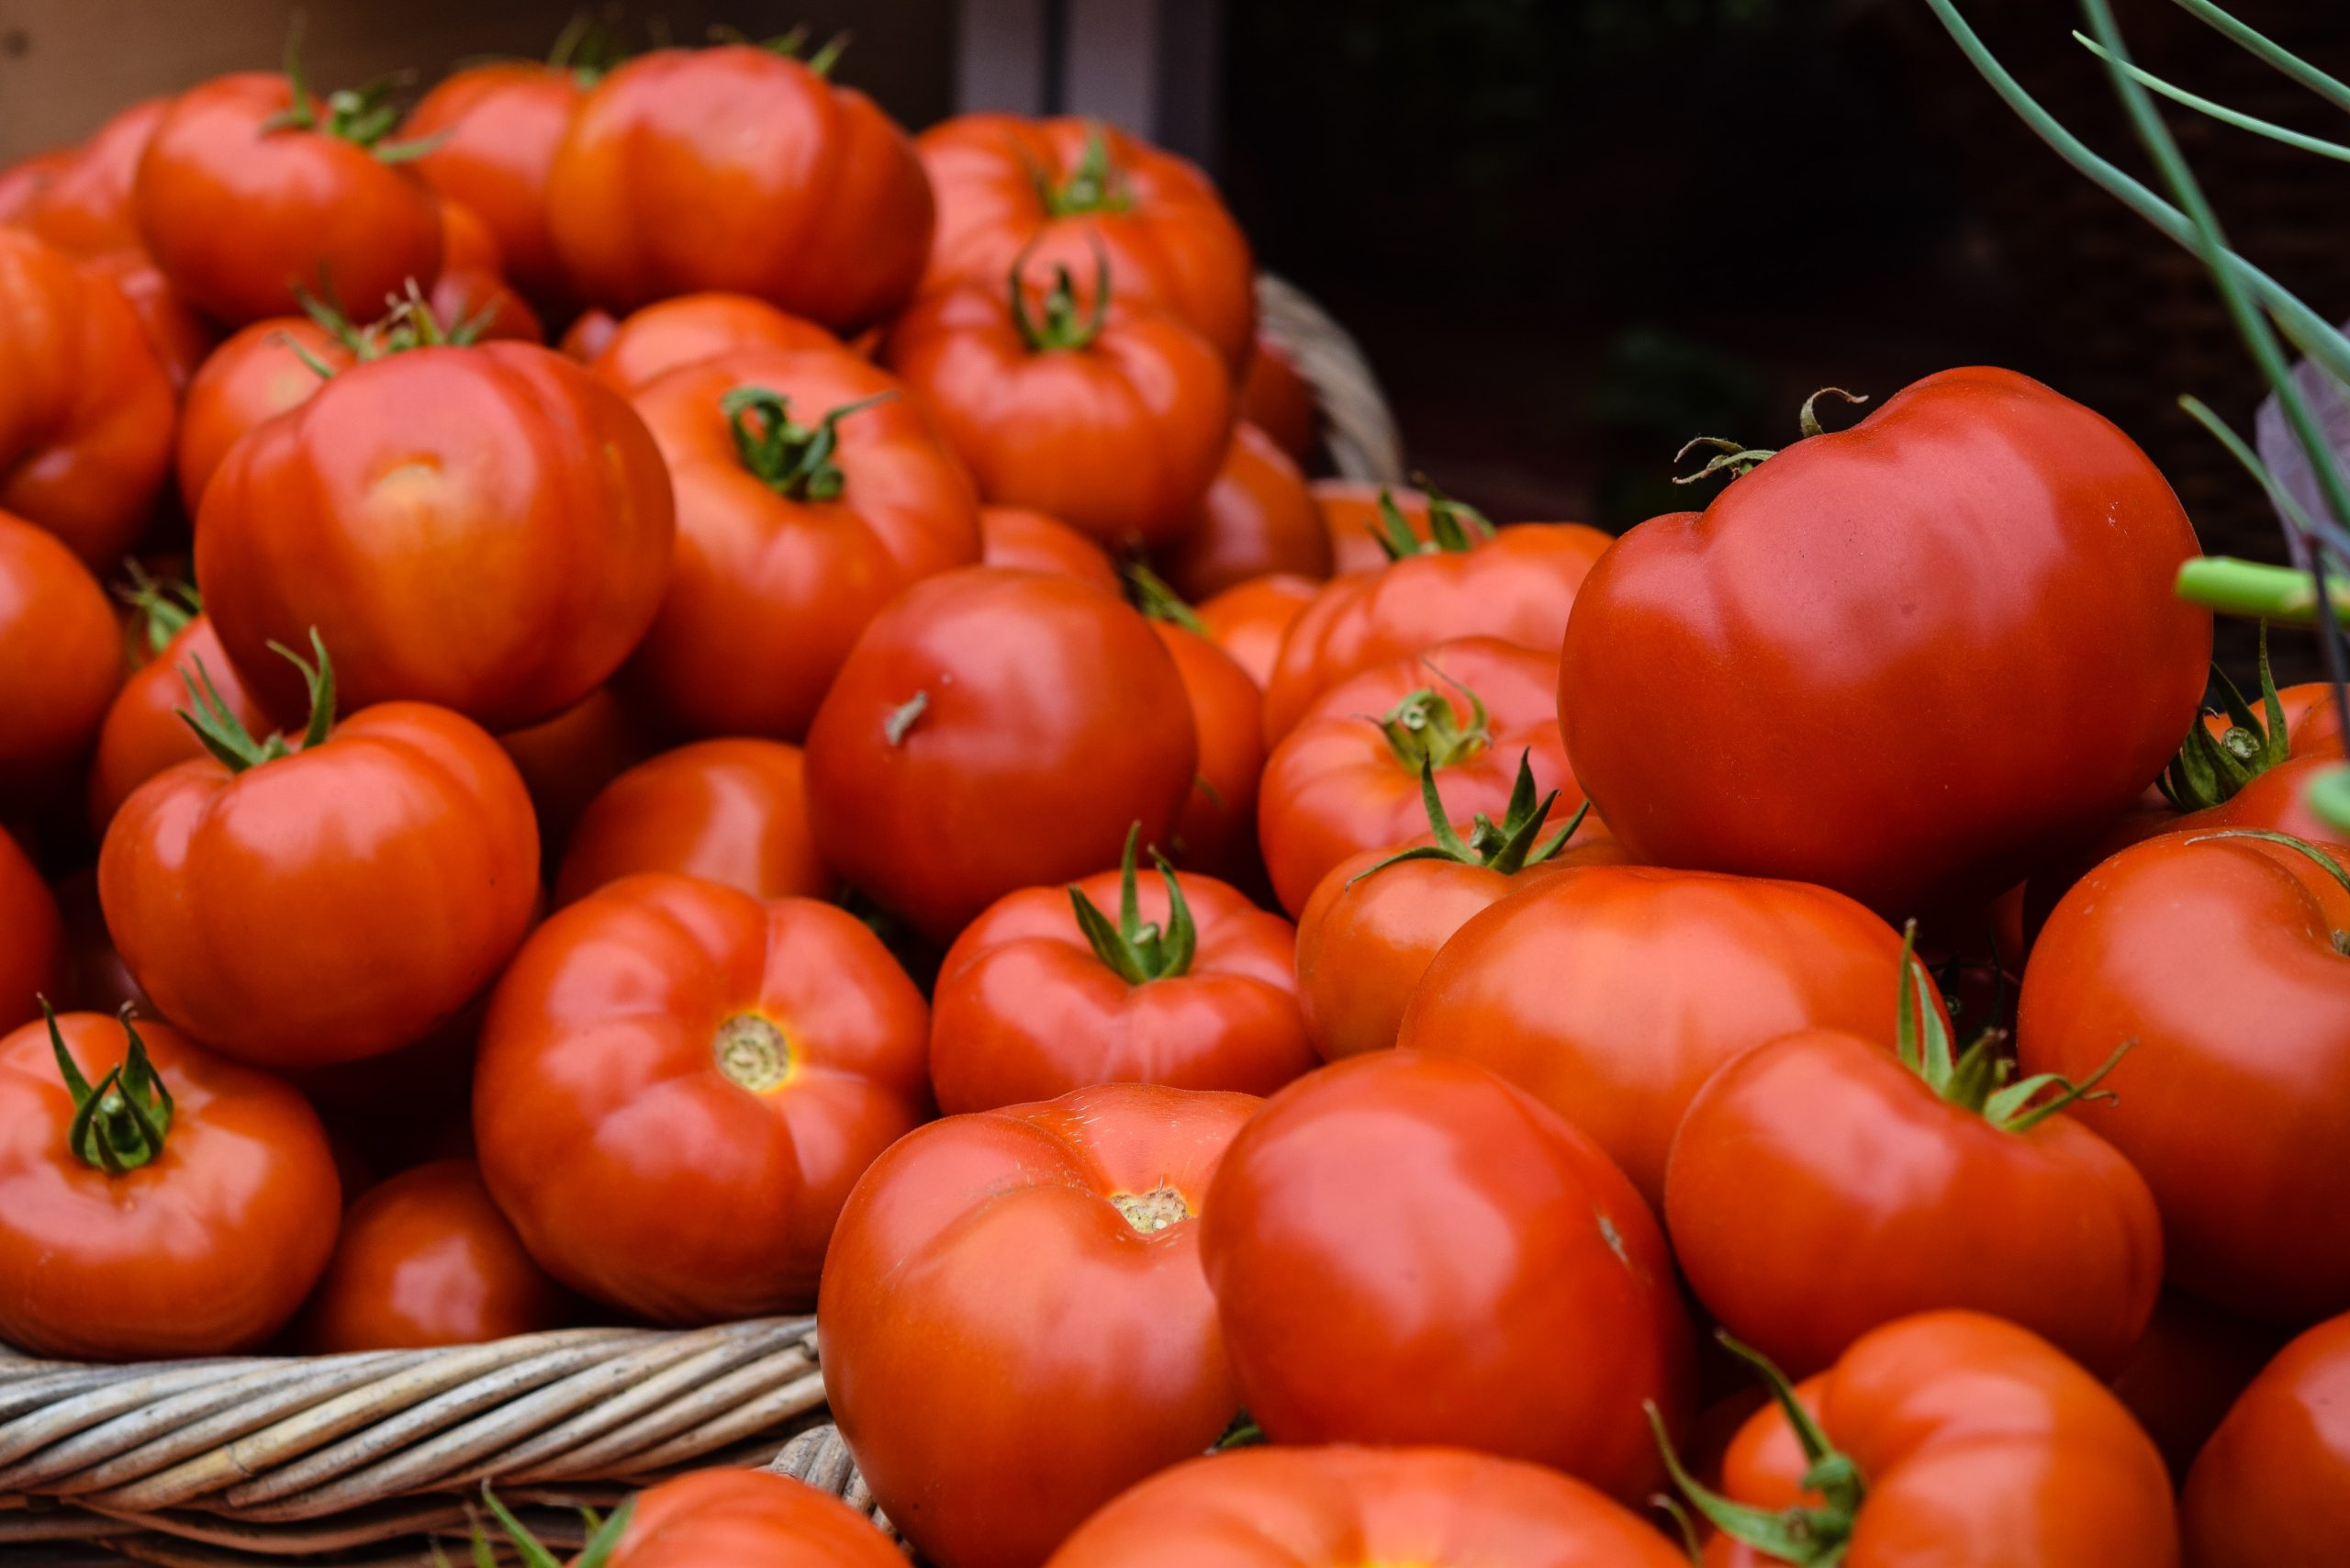 How to Plant Tomatoes That Will Yield the Fruit You Want